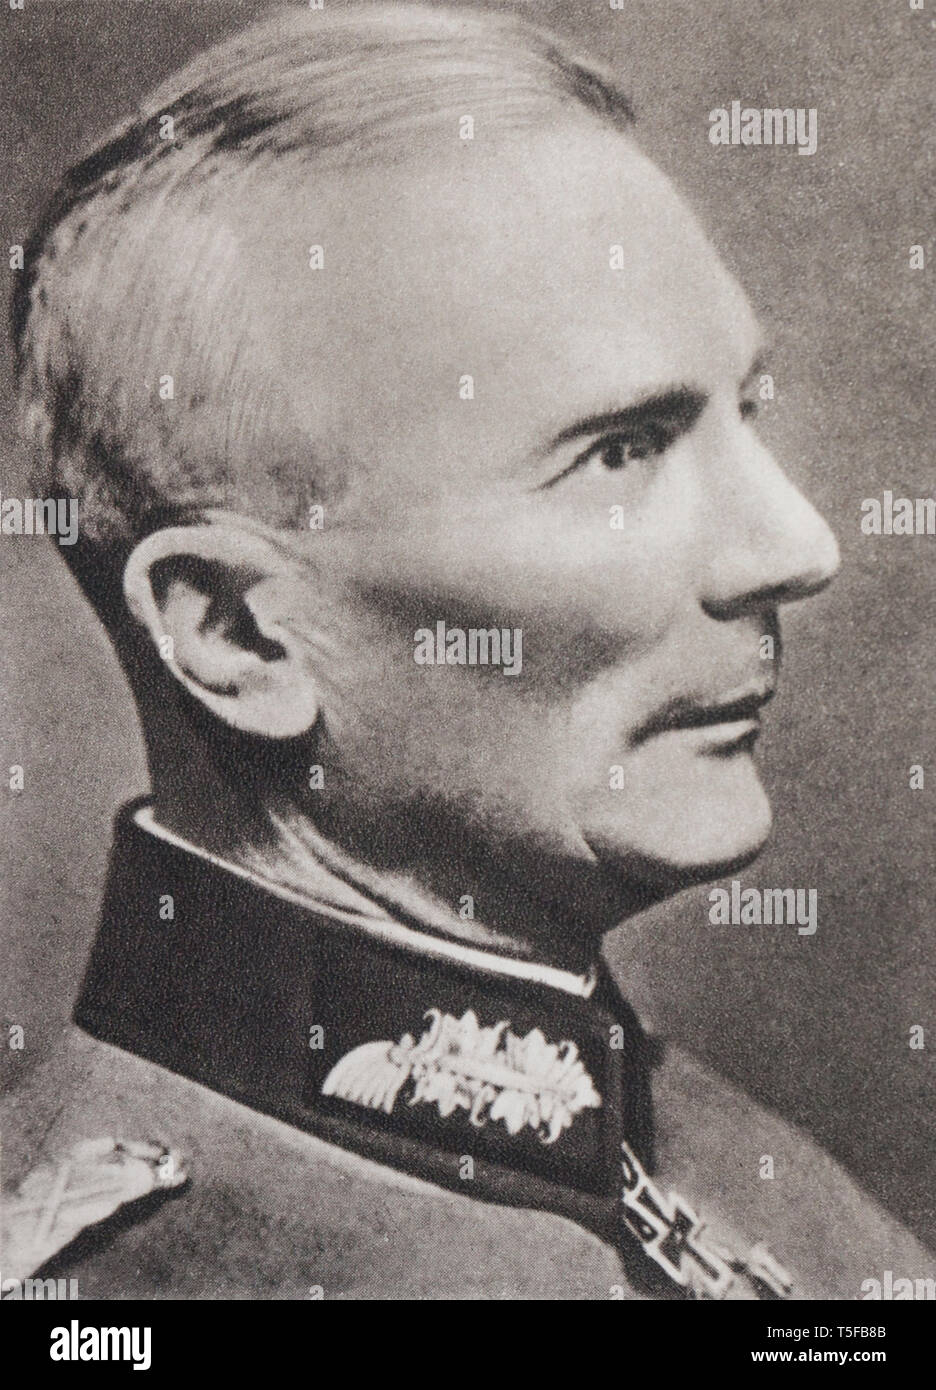 Portrait of the field marshal von Bock (1880-1945), Commander of the German armies on the central front (East Front). - Stock Image